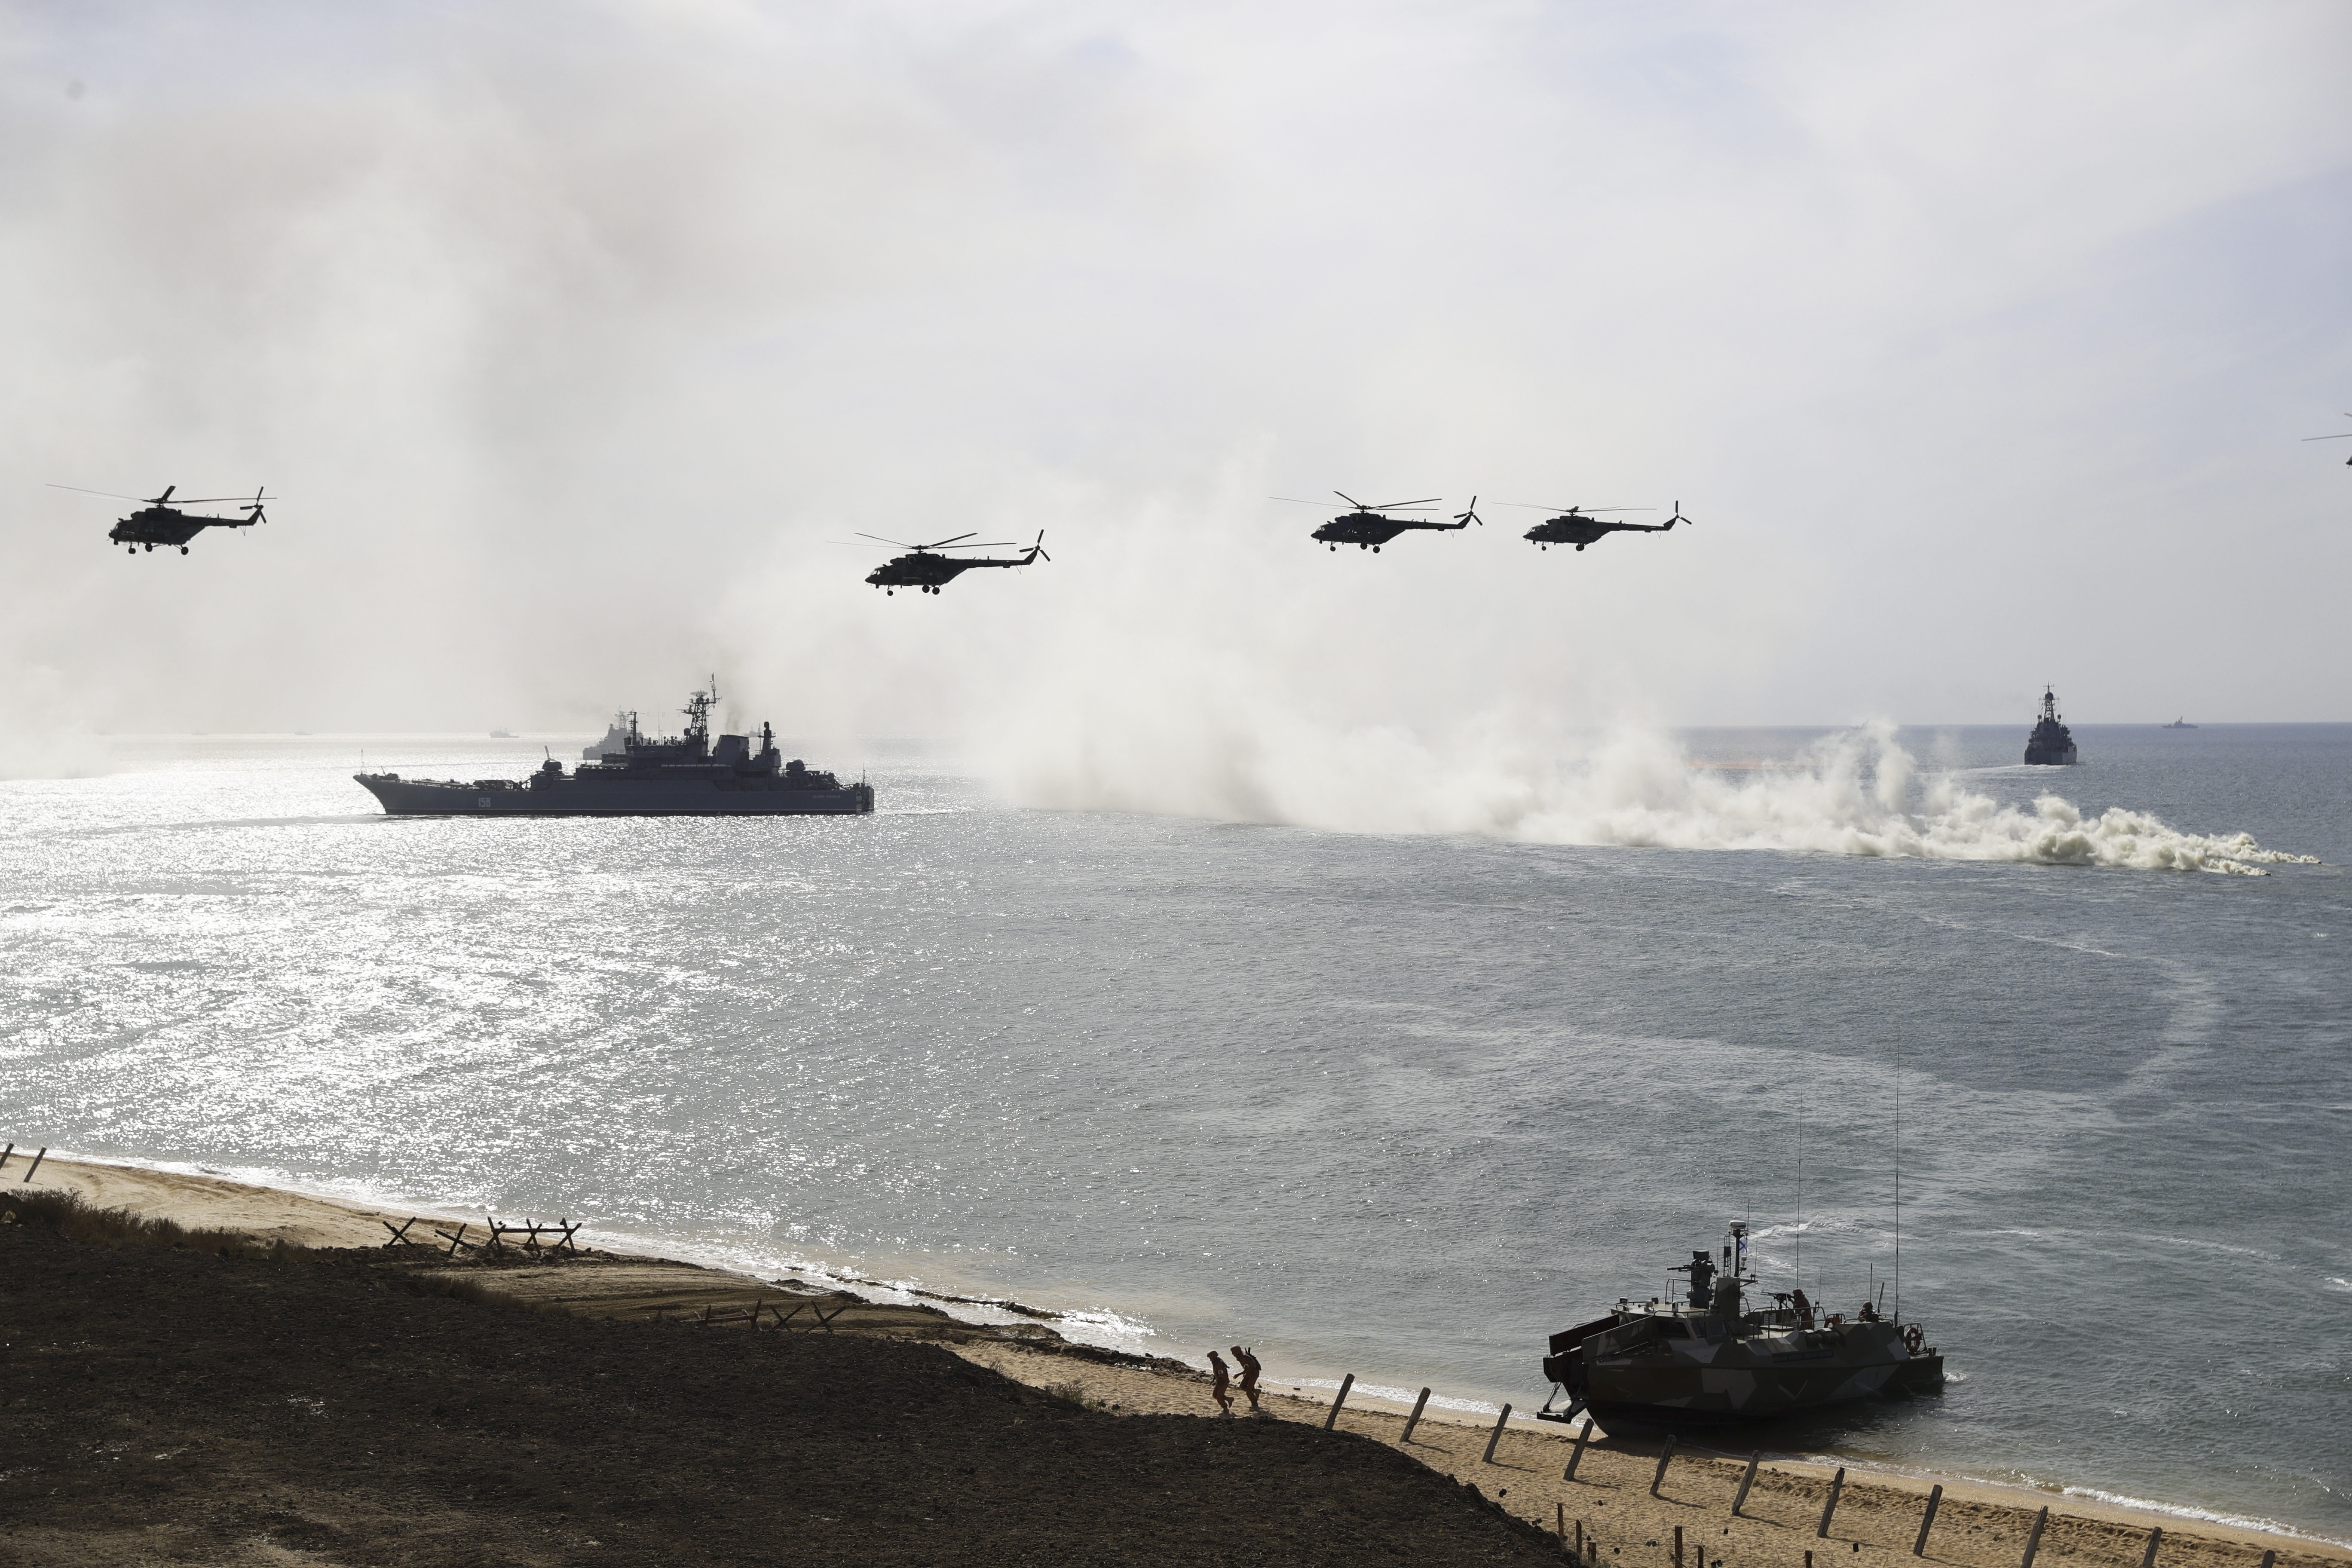 Russia's resurgent Navy demands a coherent response, not wishful thinking